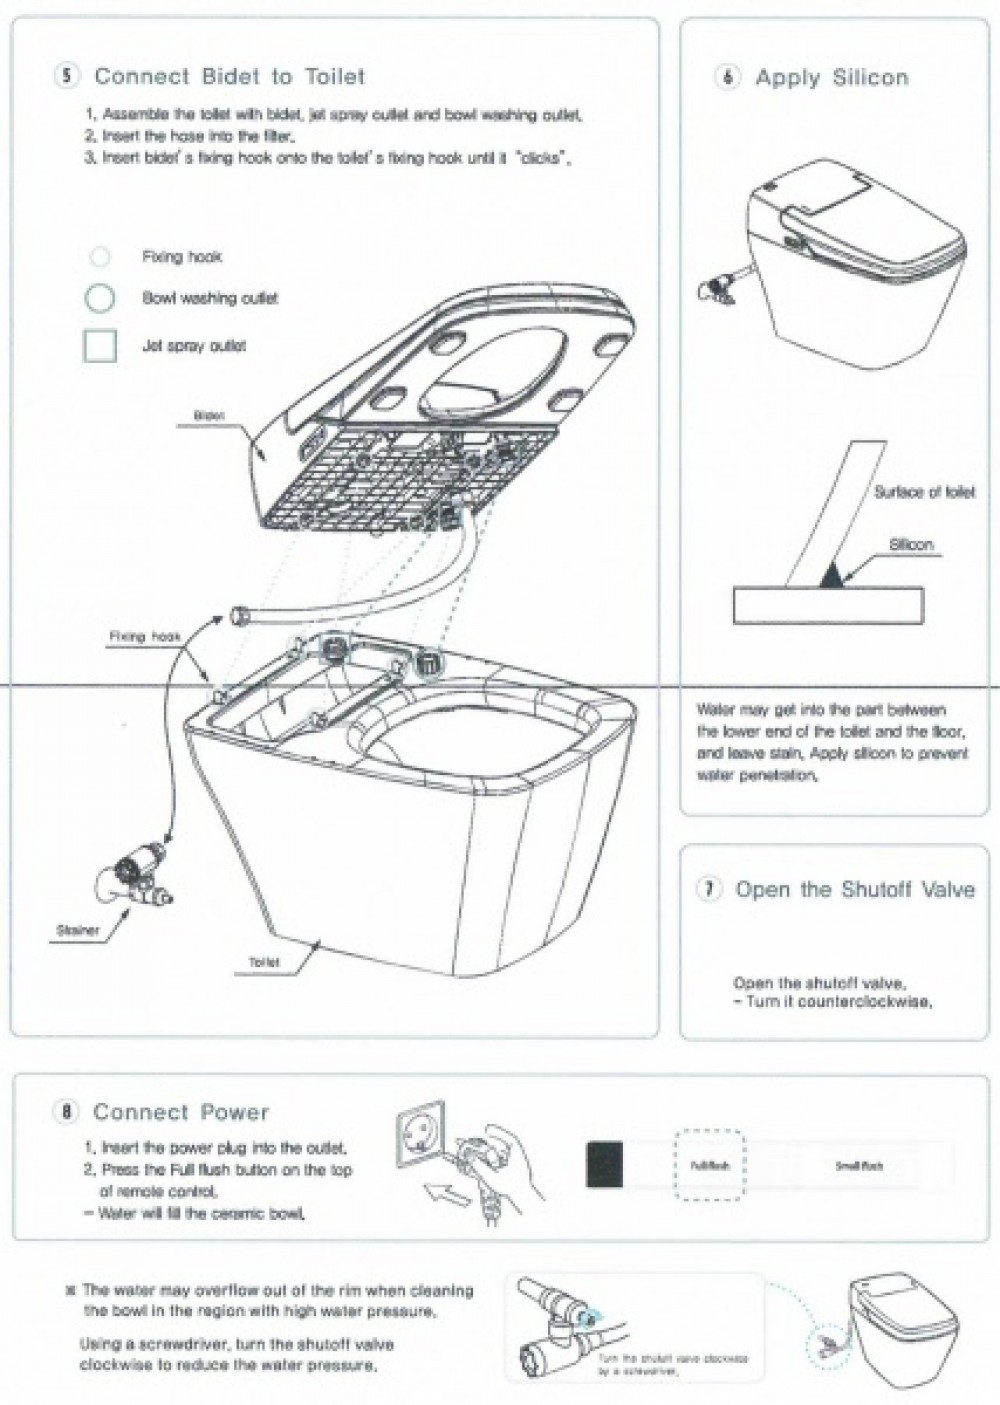 Vovo Princess PB 707S description toilet bidet